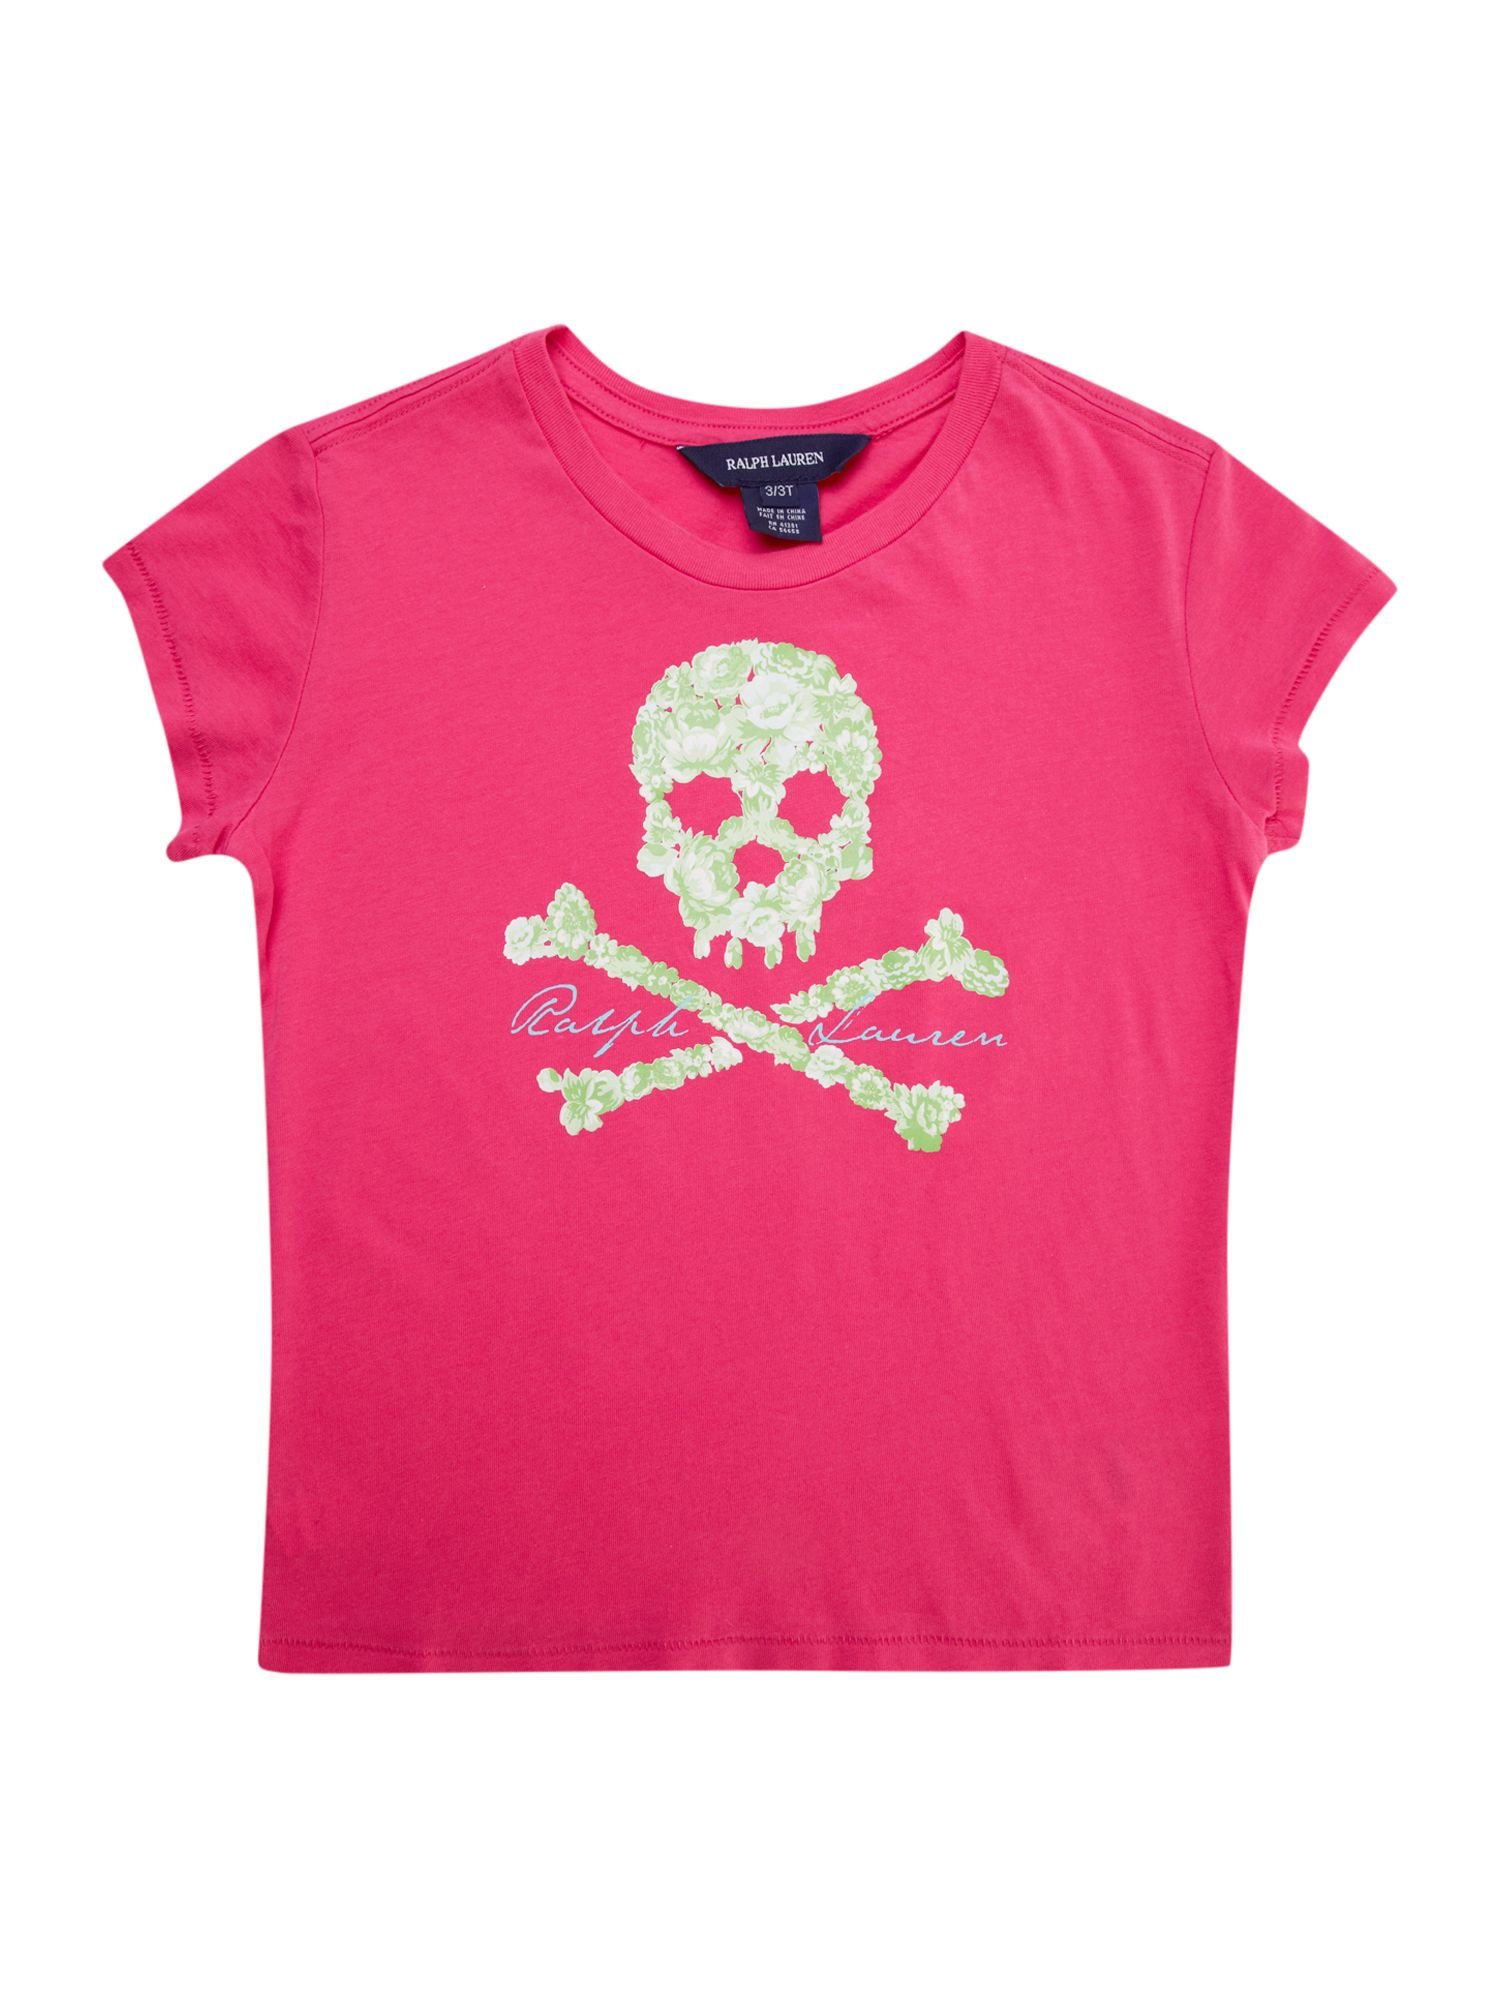 Girls floral skull jersey t-shirt